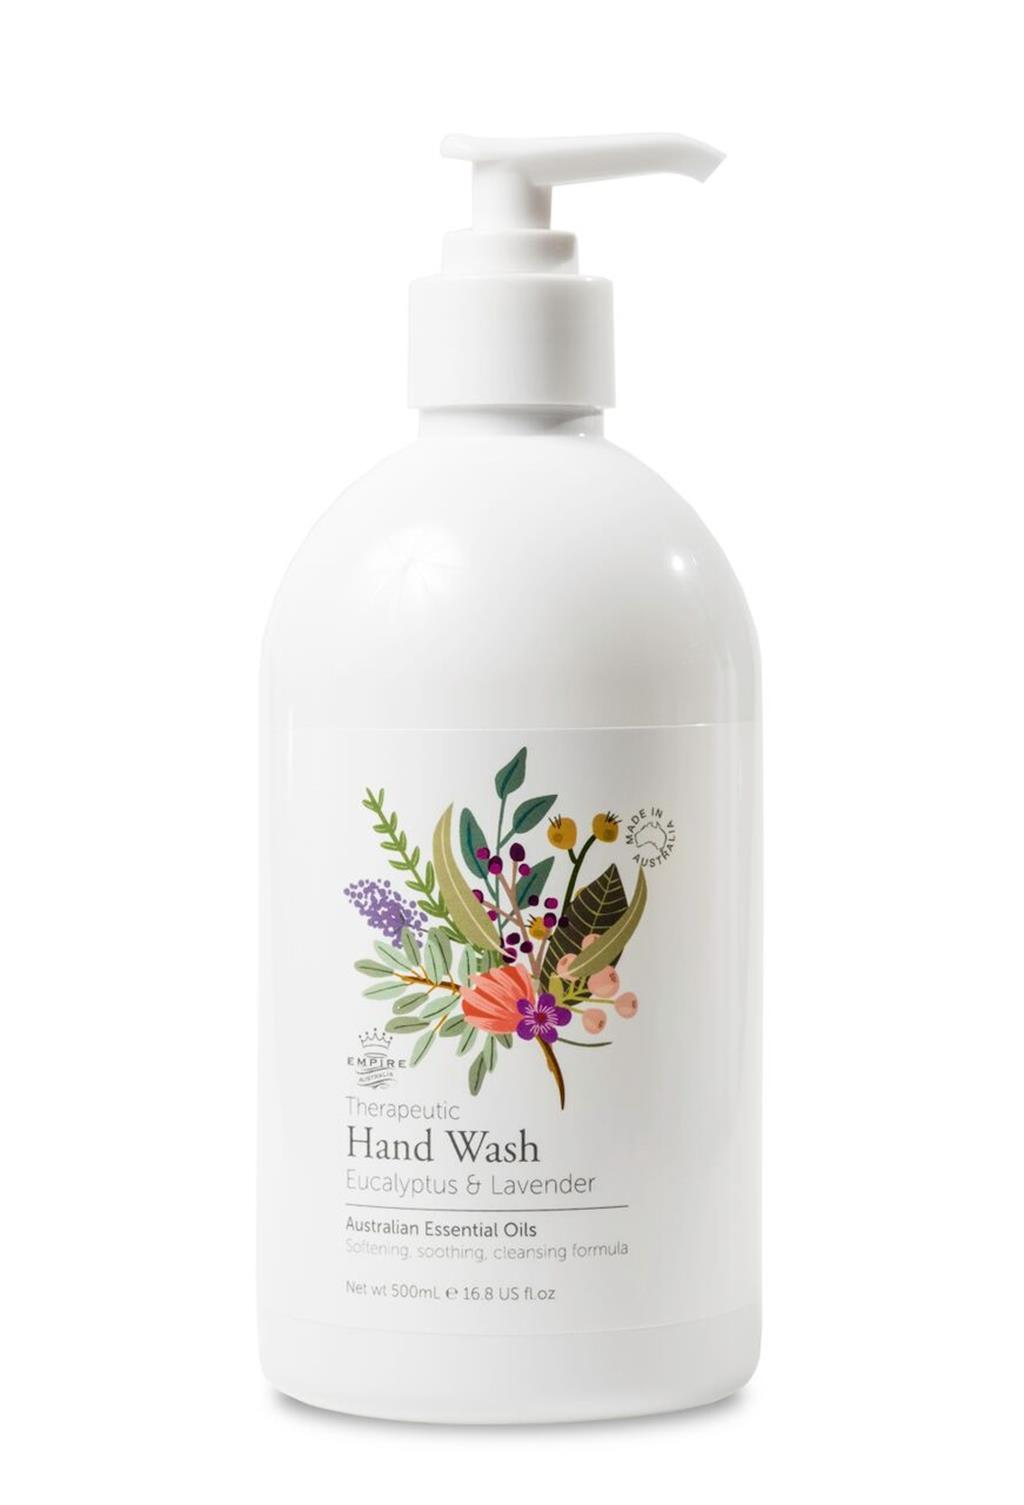 Empire Therapeutic Series - Eucalyptus & Lavender Hand Wash (125ml) image